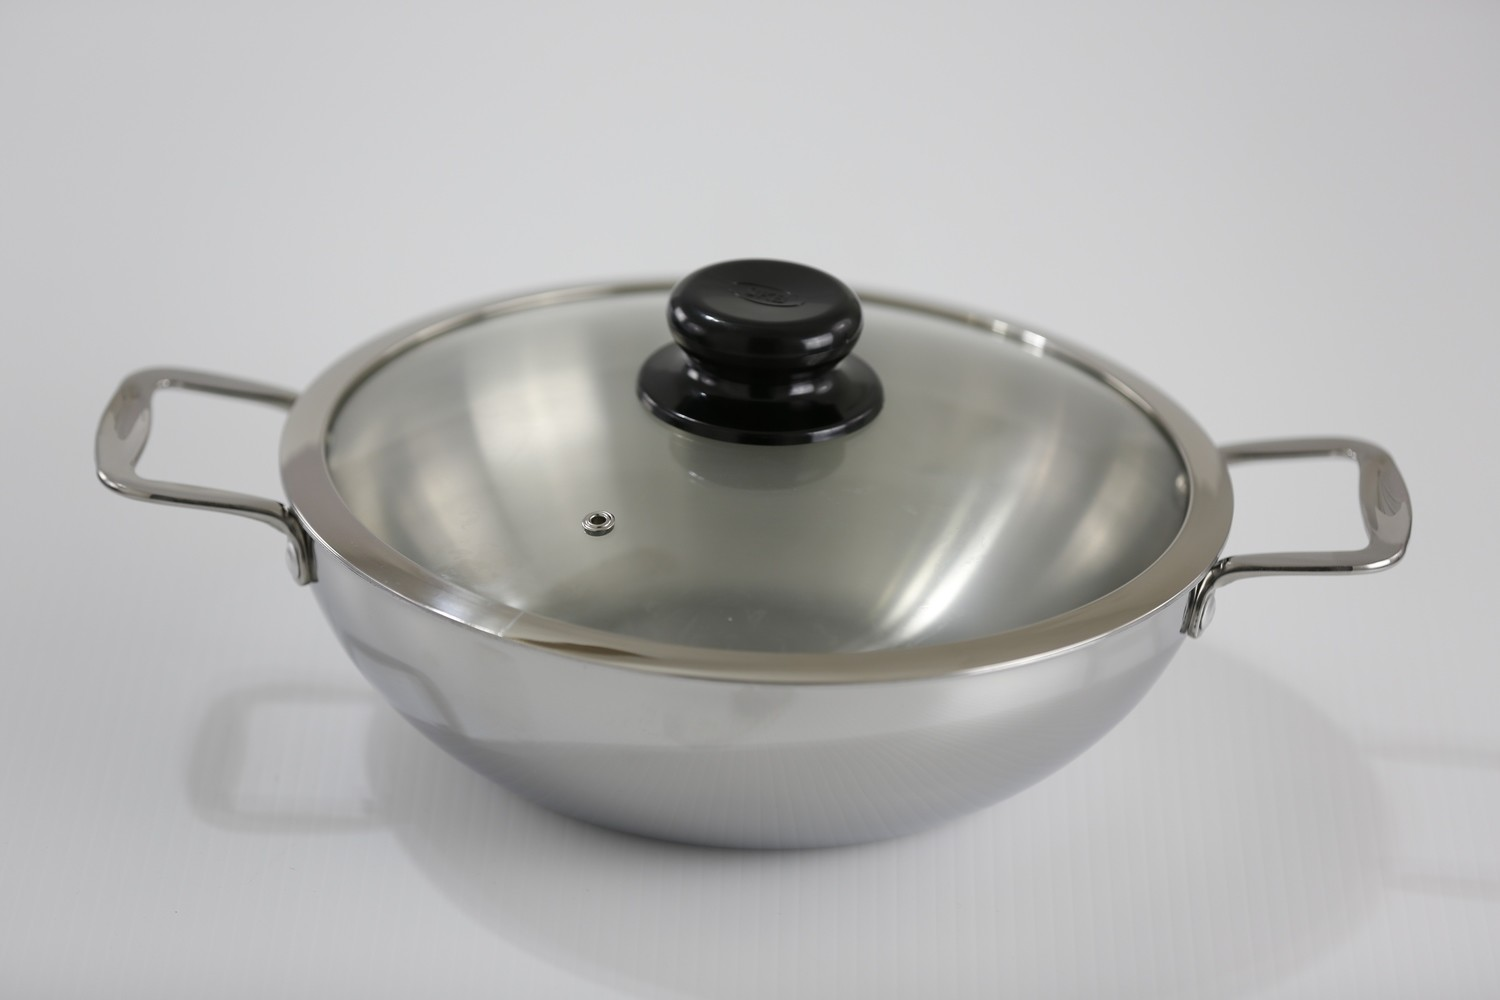 SS1 5.81 Qt. Stainless Steel Tri-Ply Wok With Glass Cover